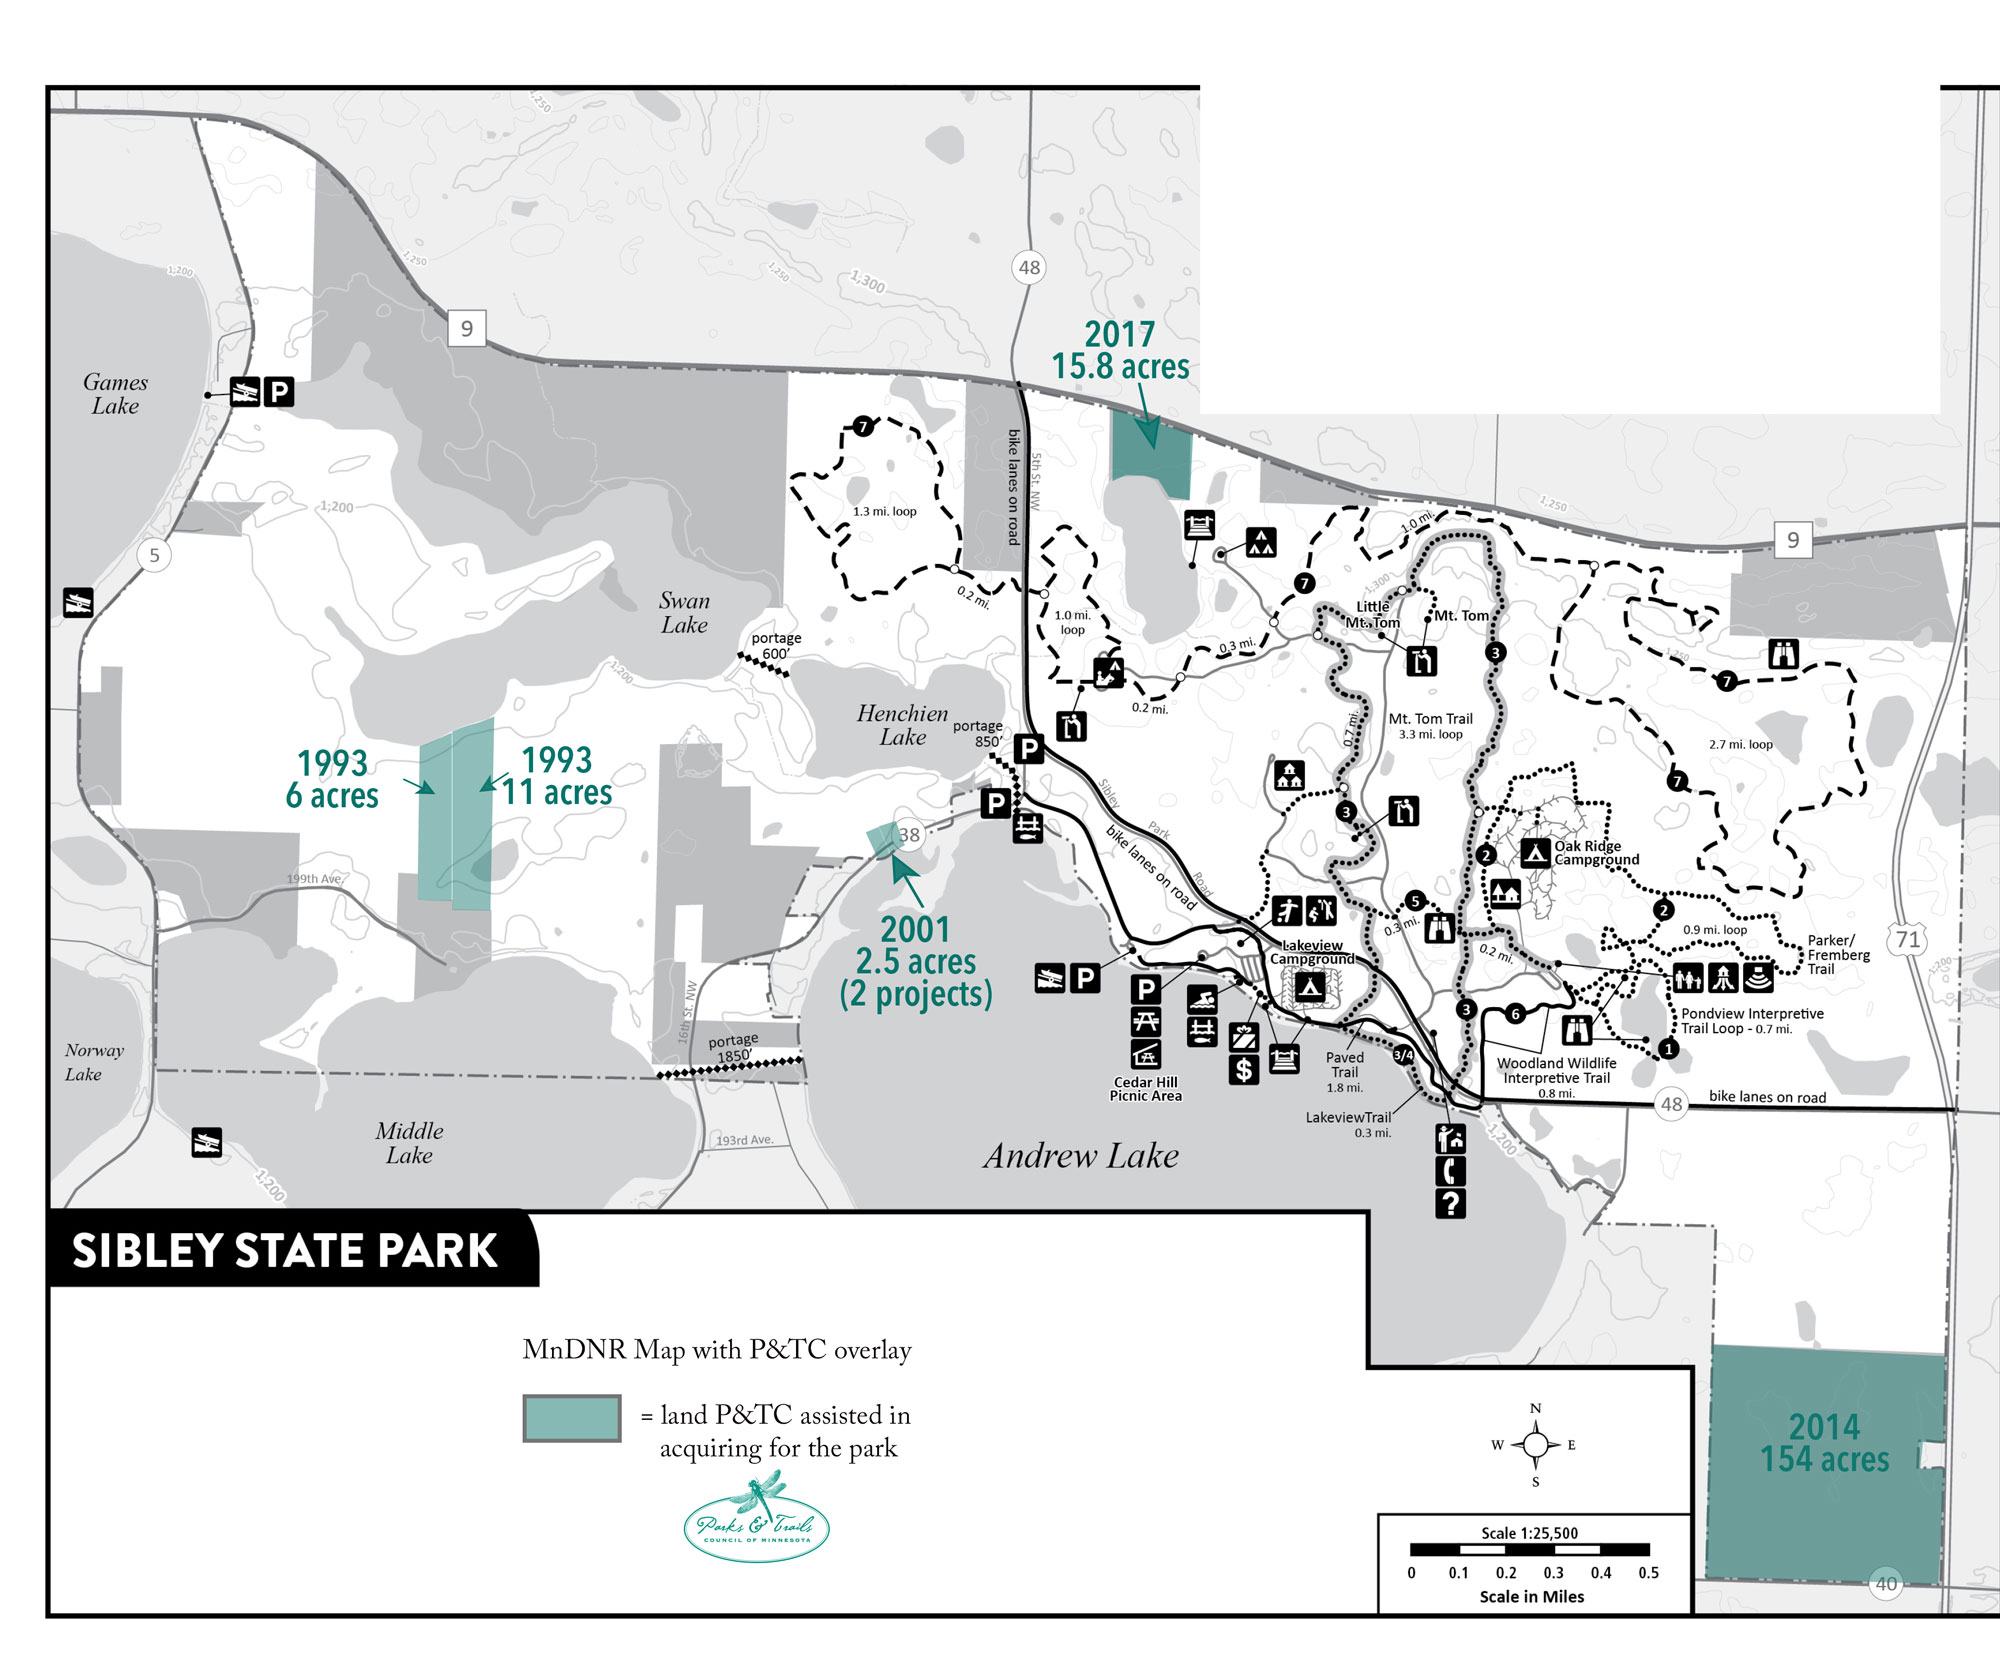 DNR map of Sibley State Park with P&TC project overlays